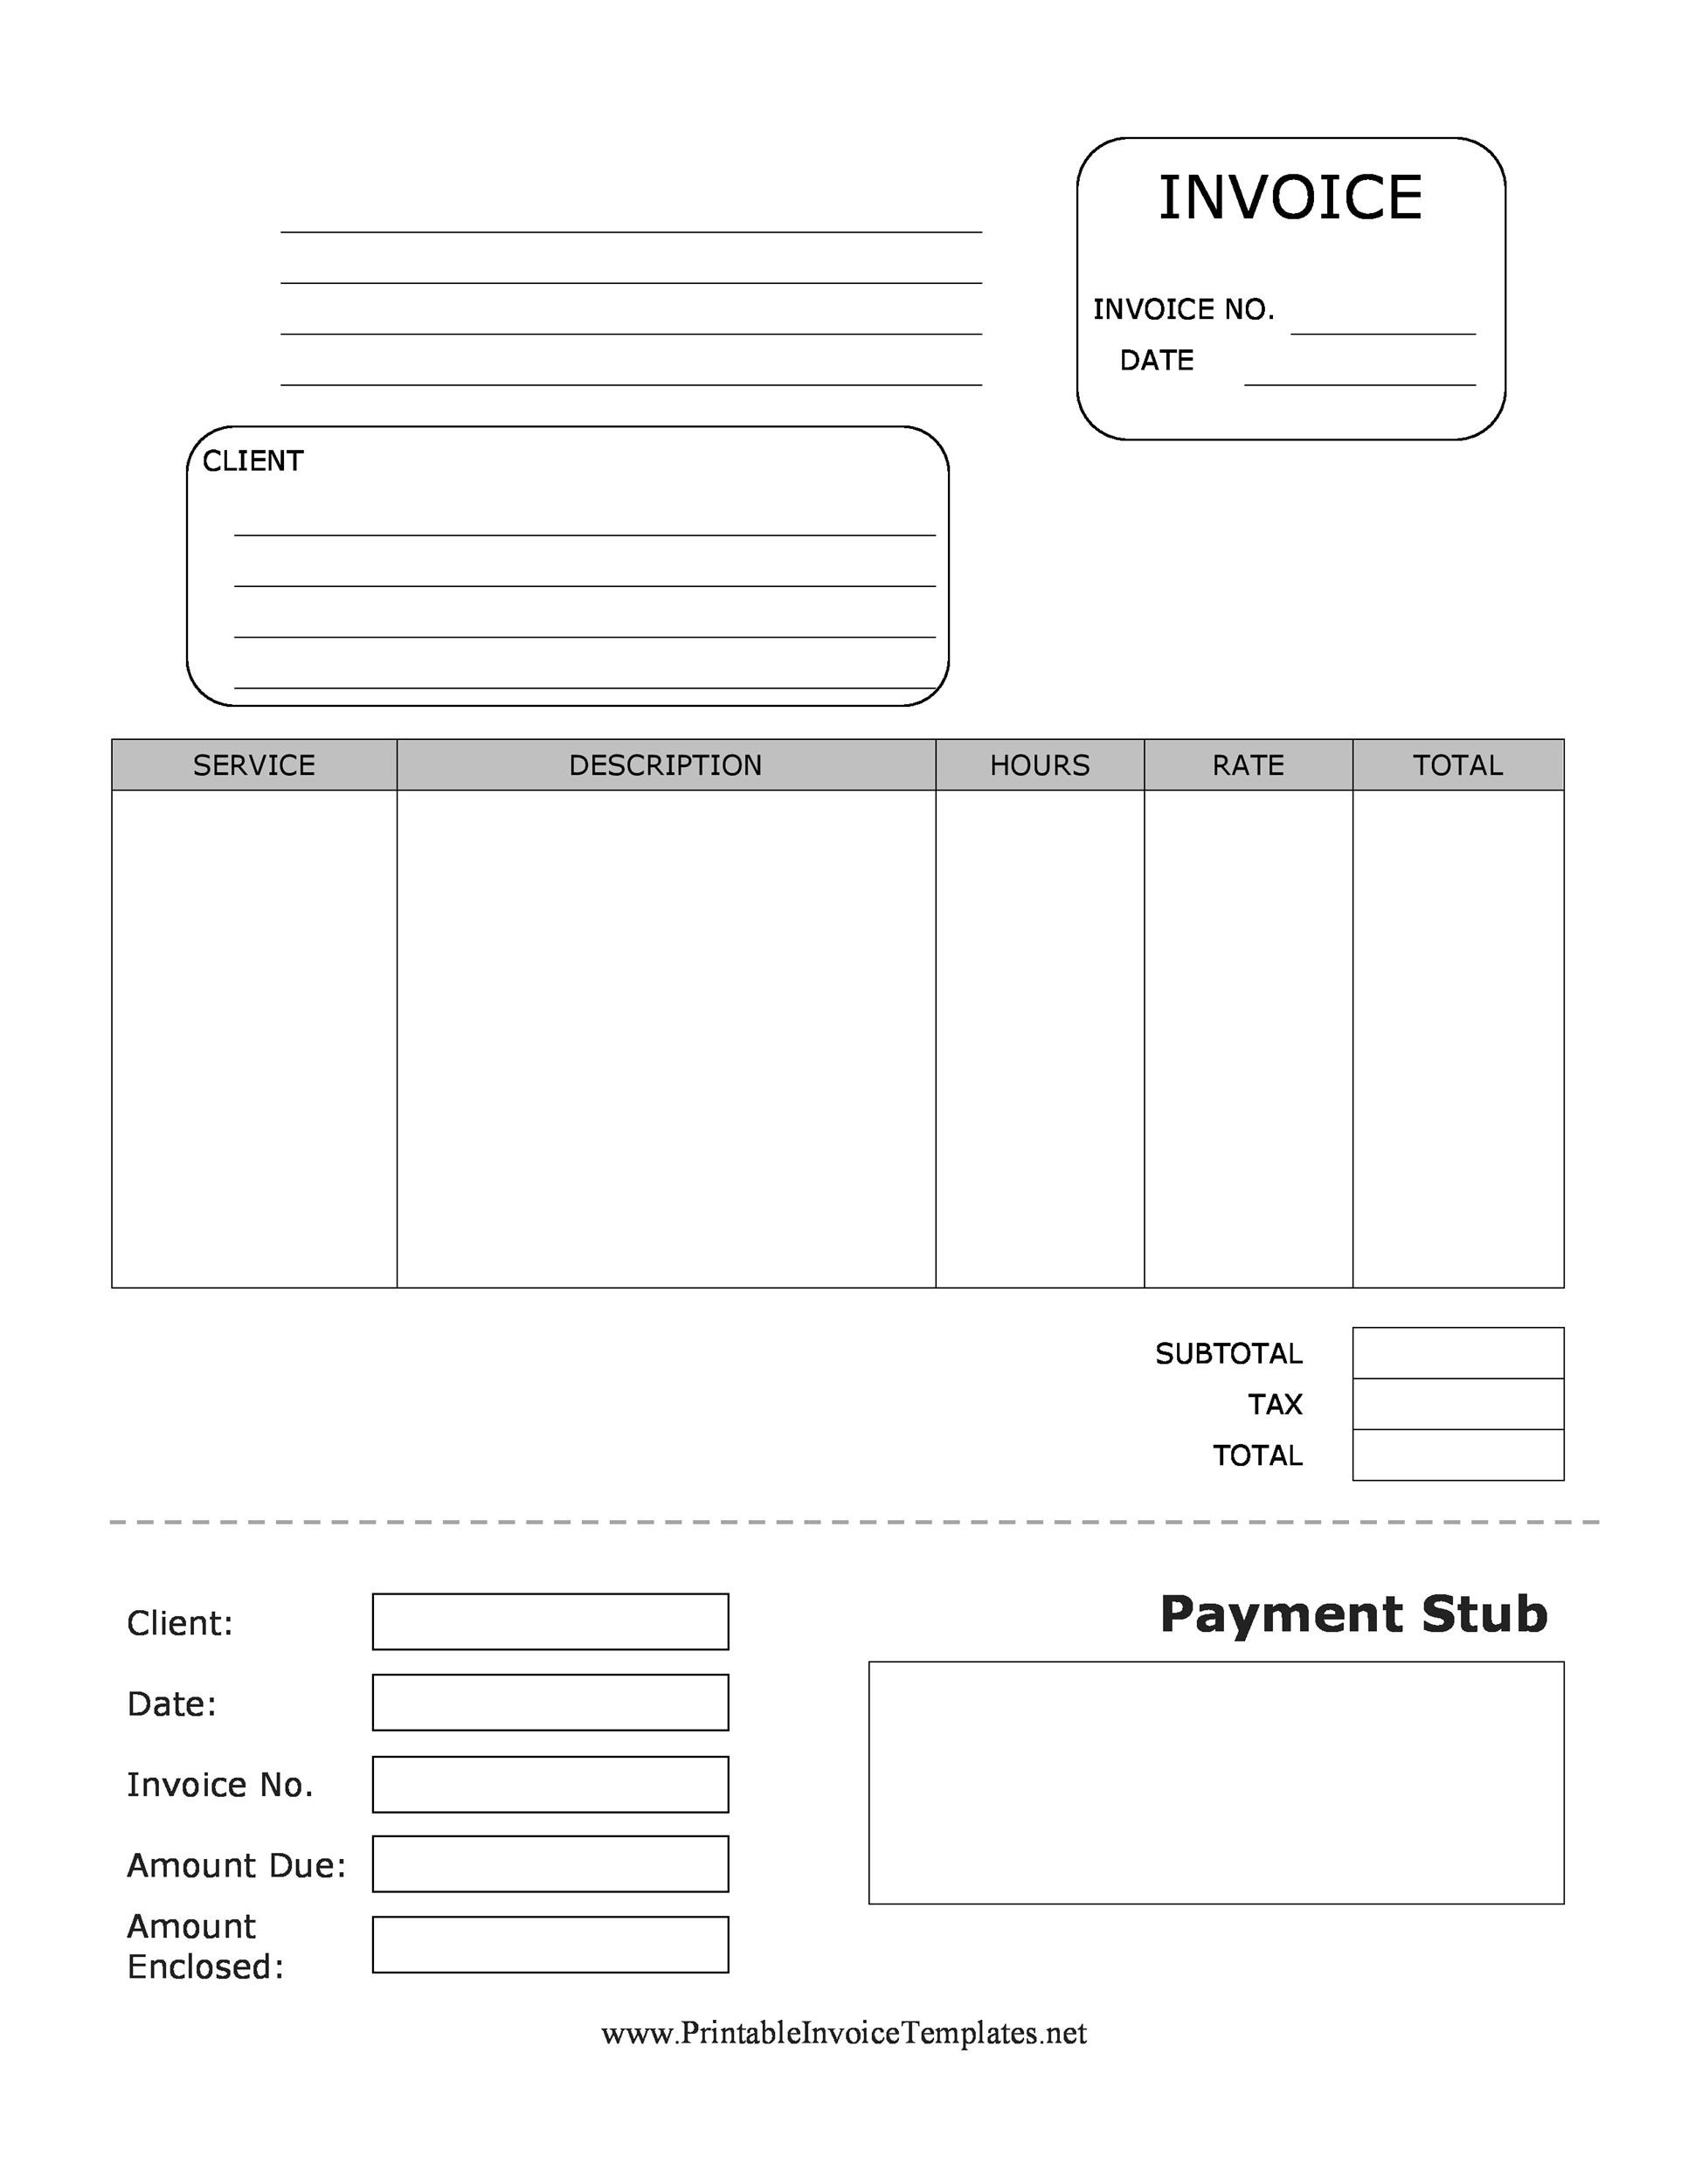 Printable Pay Stub Template Free Aprilonthemarchco - Subcontractor pay stub template